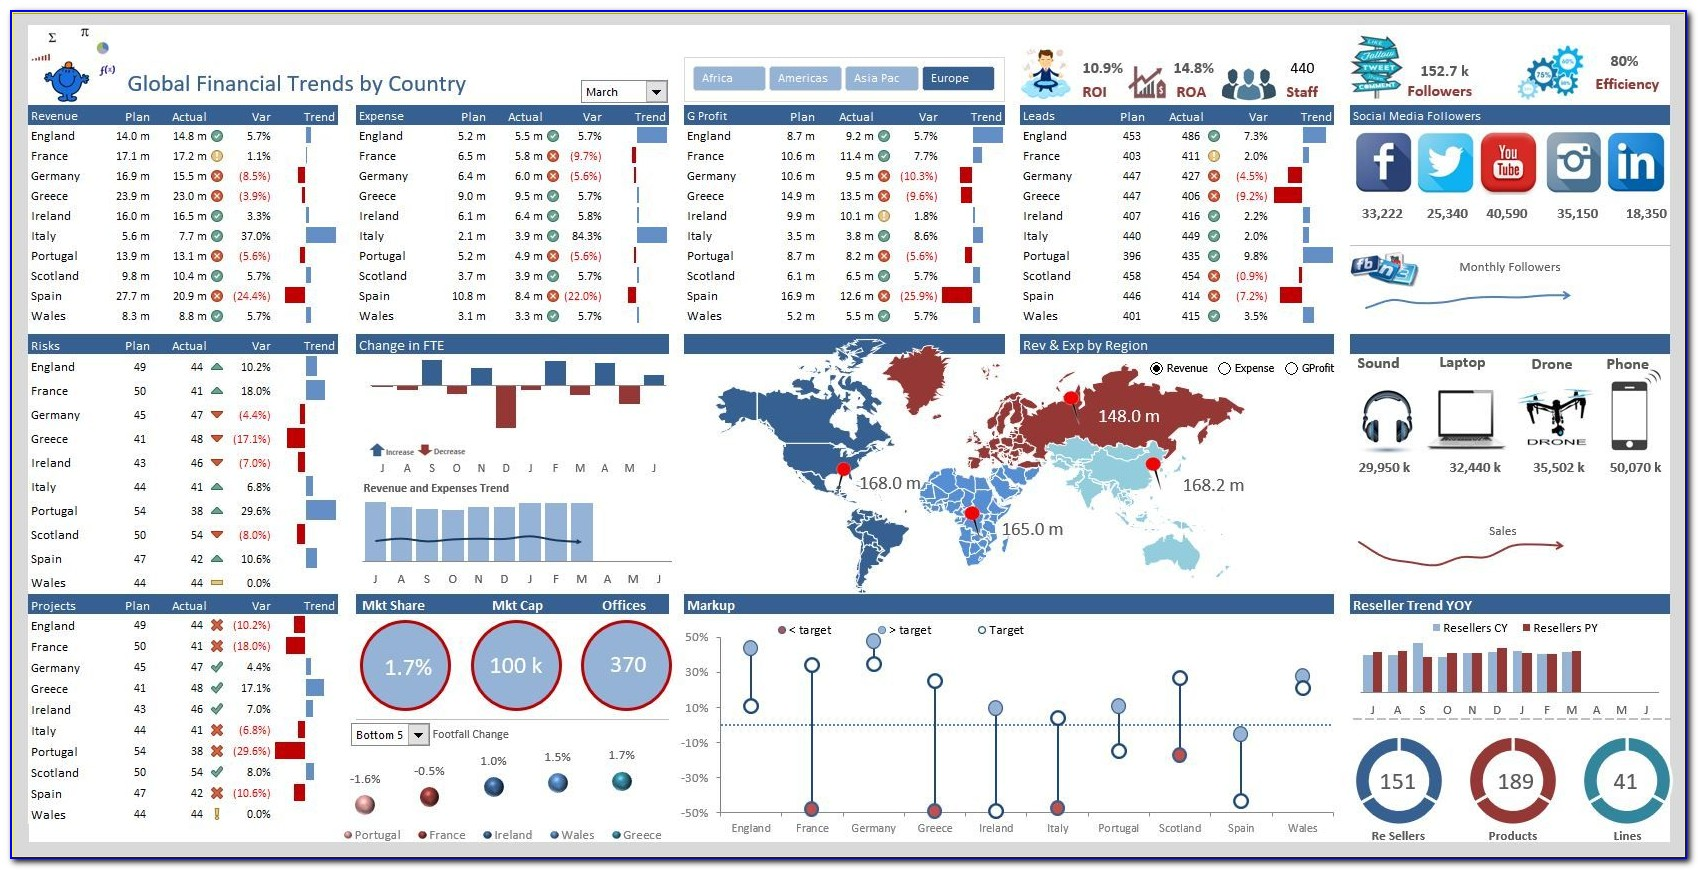 Excel 2013 Project Management Template